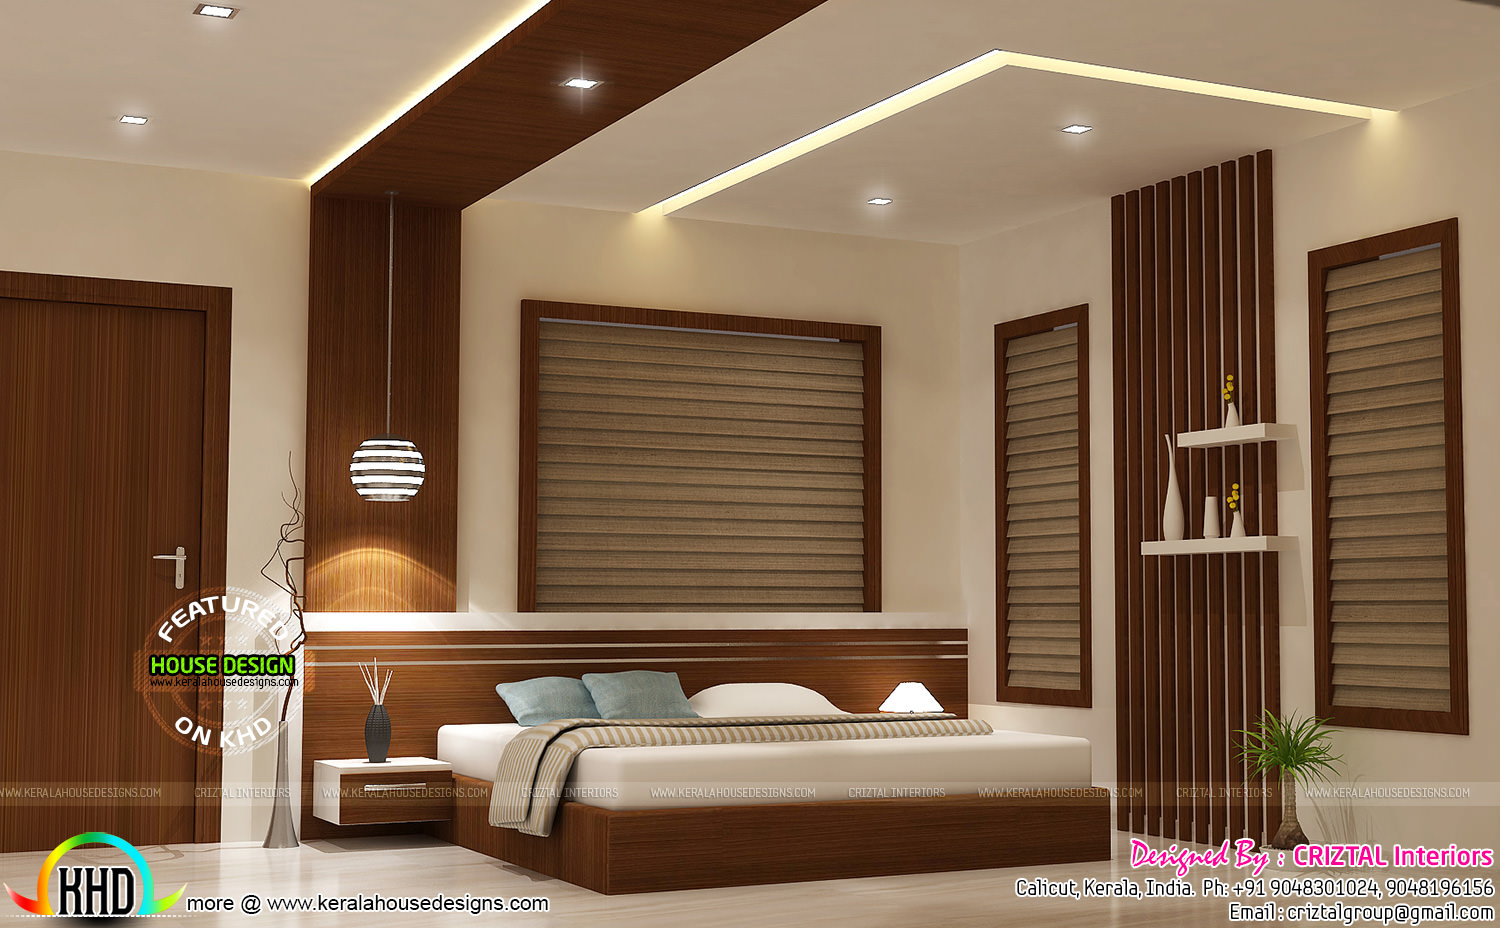 Bedroom dining hall and living interior kerala home for Home interior design room